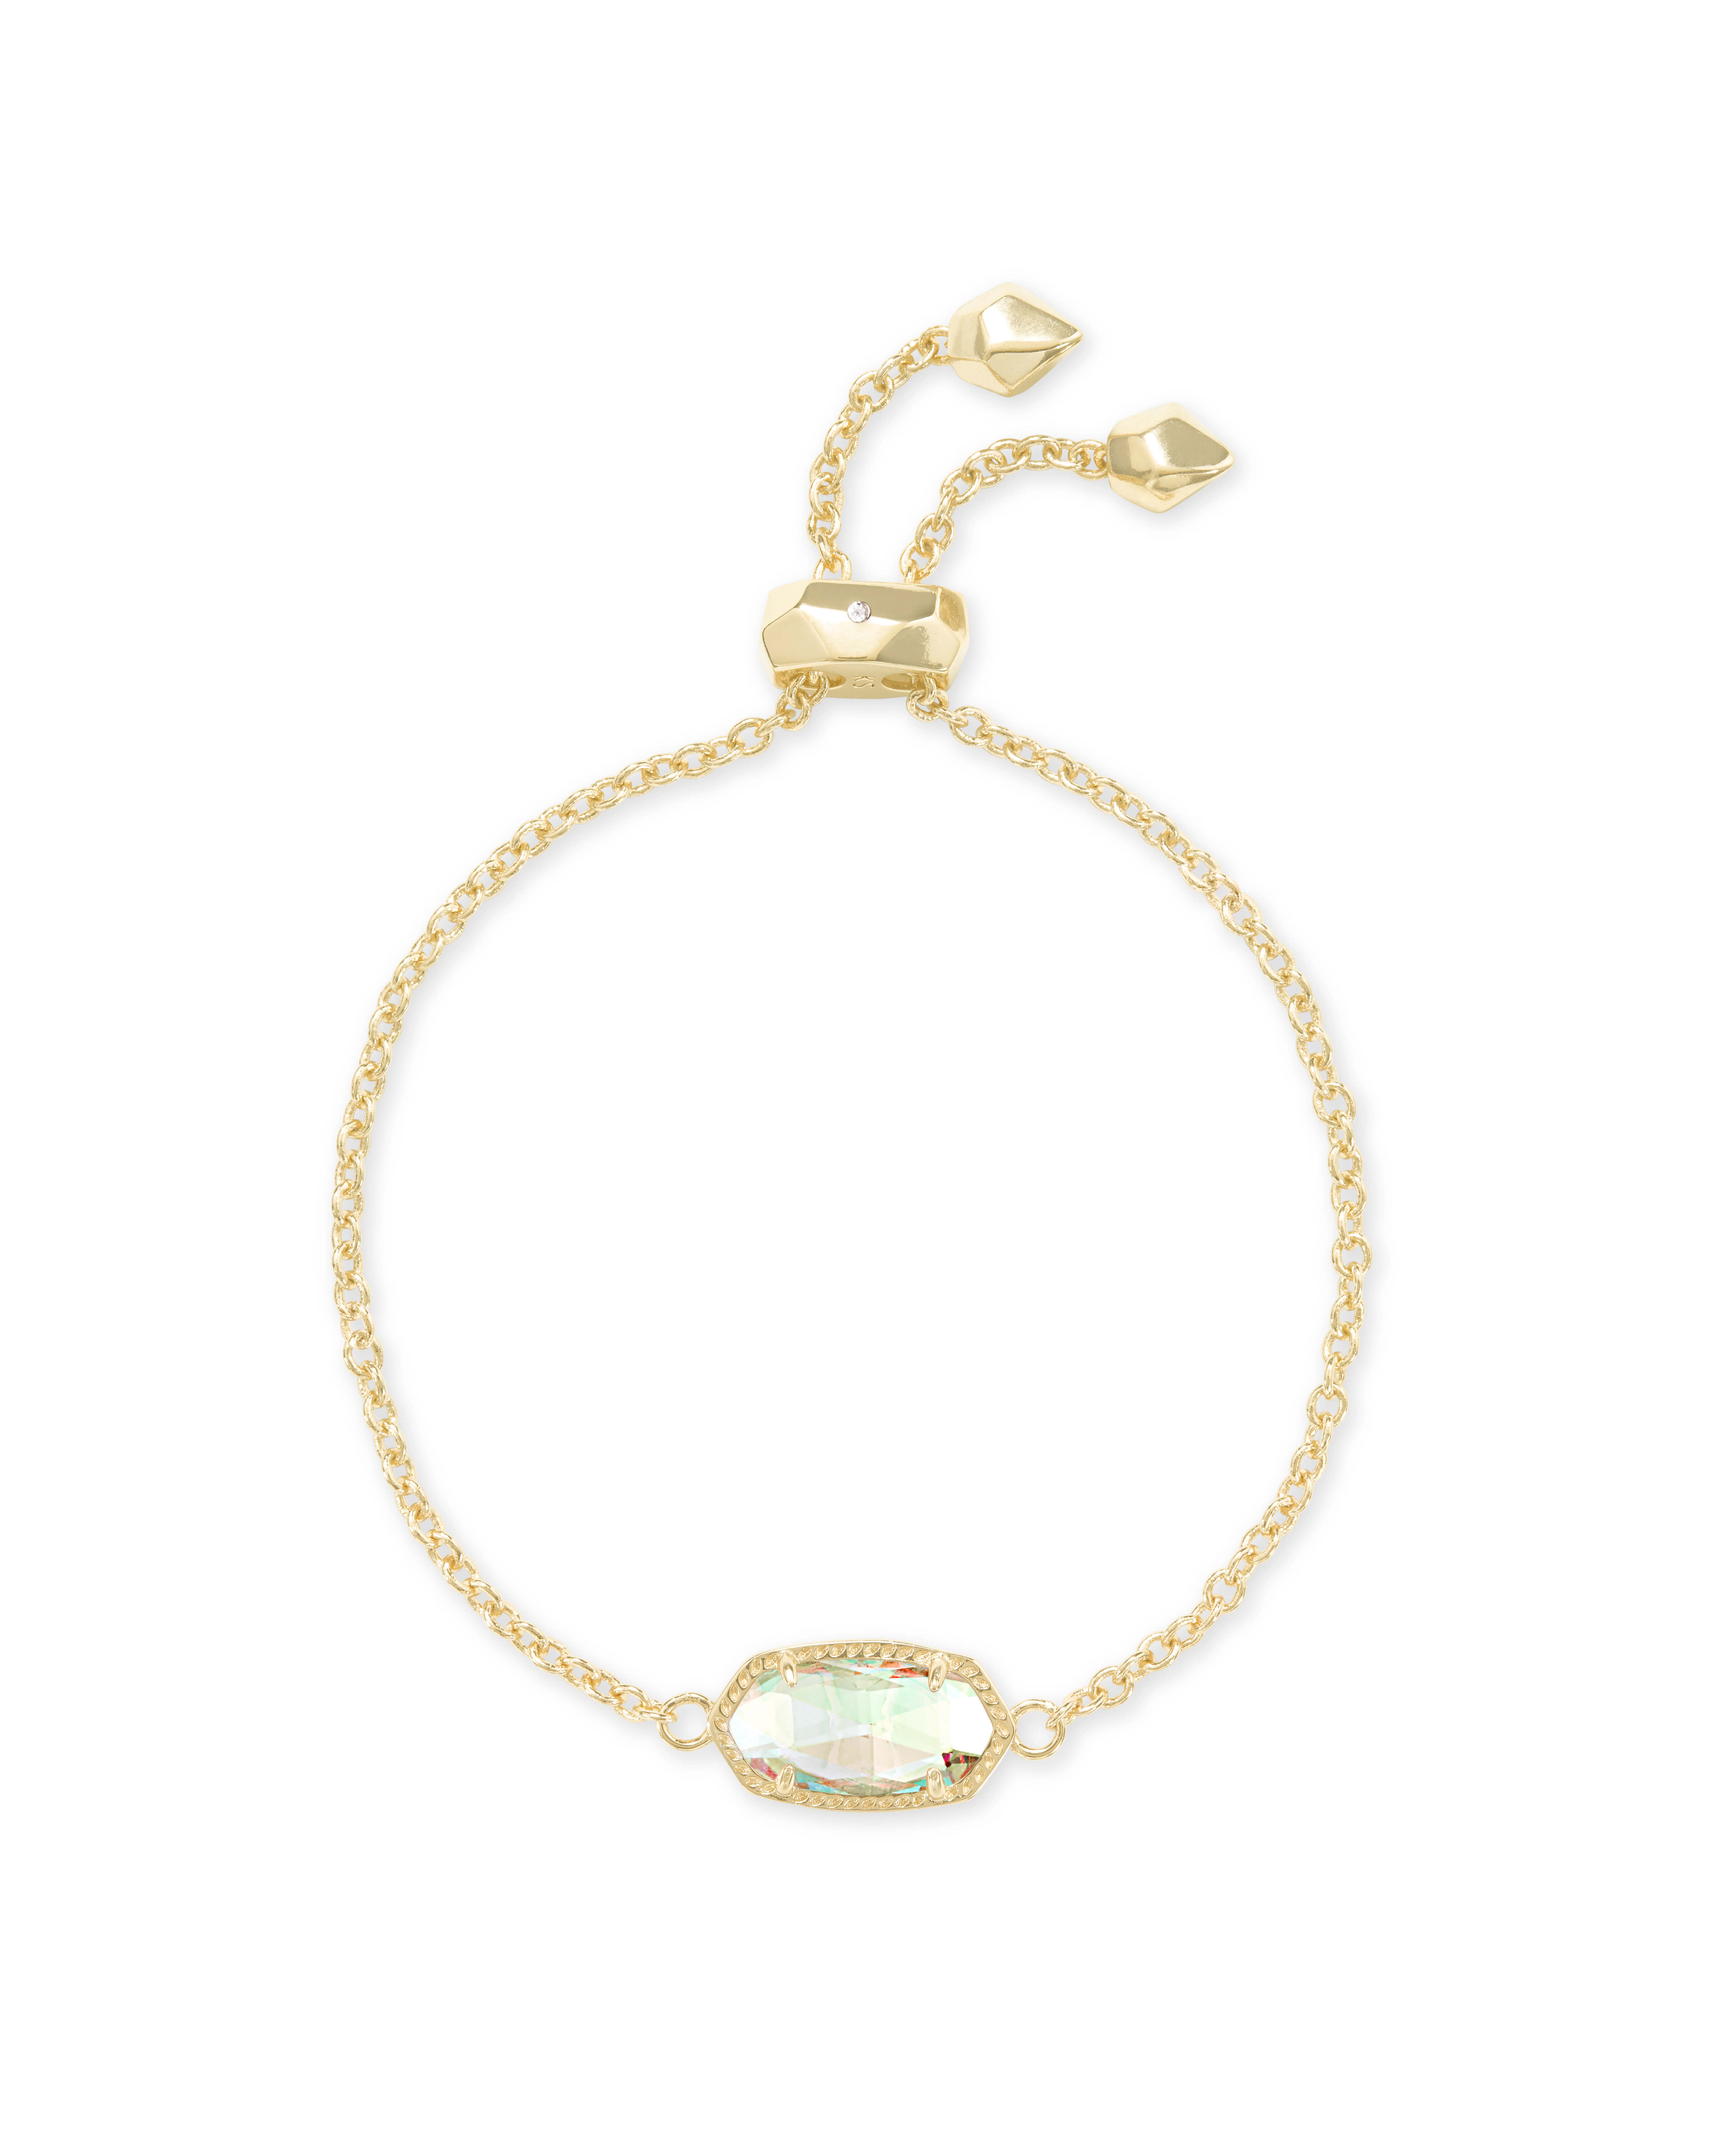 Elaina Gold Adjustable Chain Bracelet in Dichroic Glass